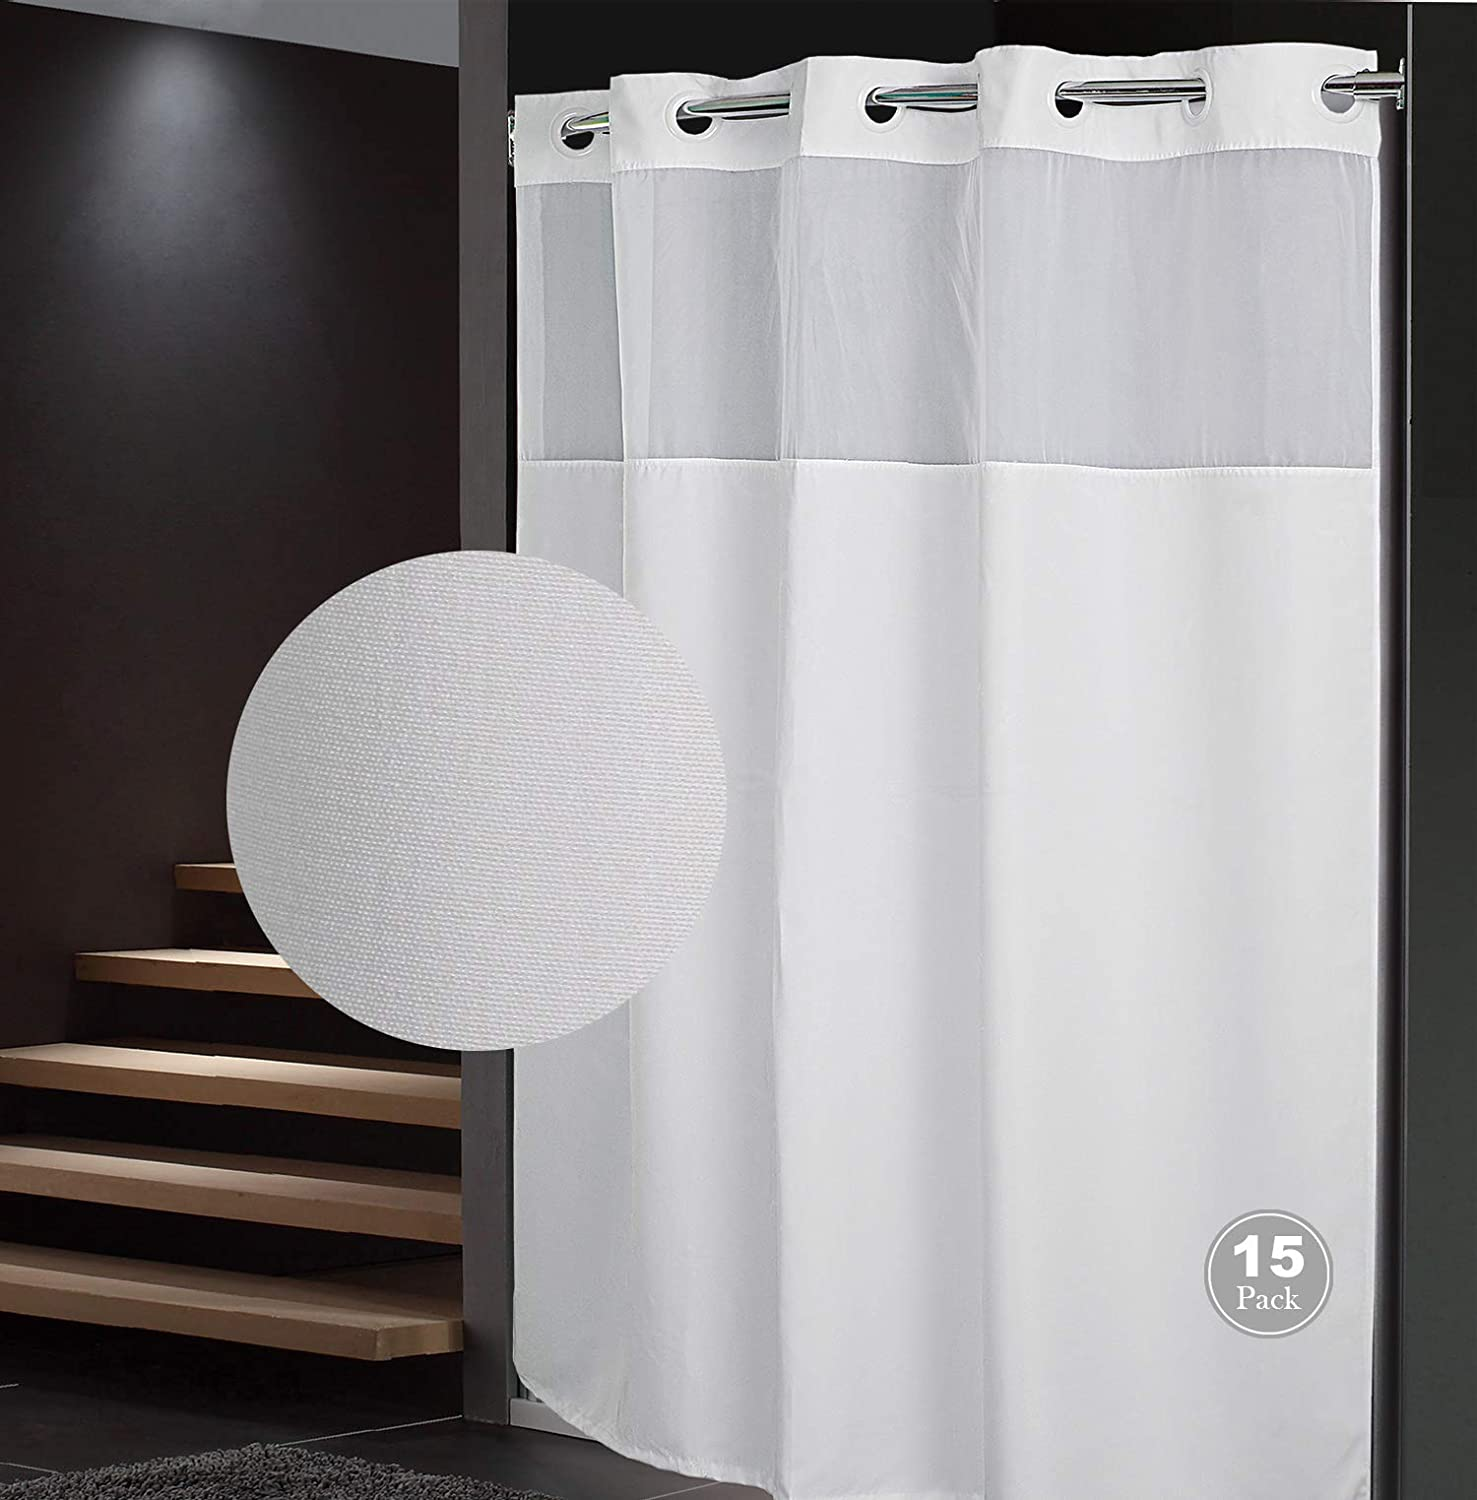 QKHOOK Shower Curtain depot with Snap in Liner Packs Pla 15 Max 48% OFF 71x74 Inch